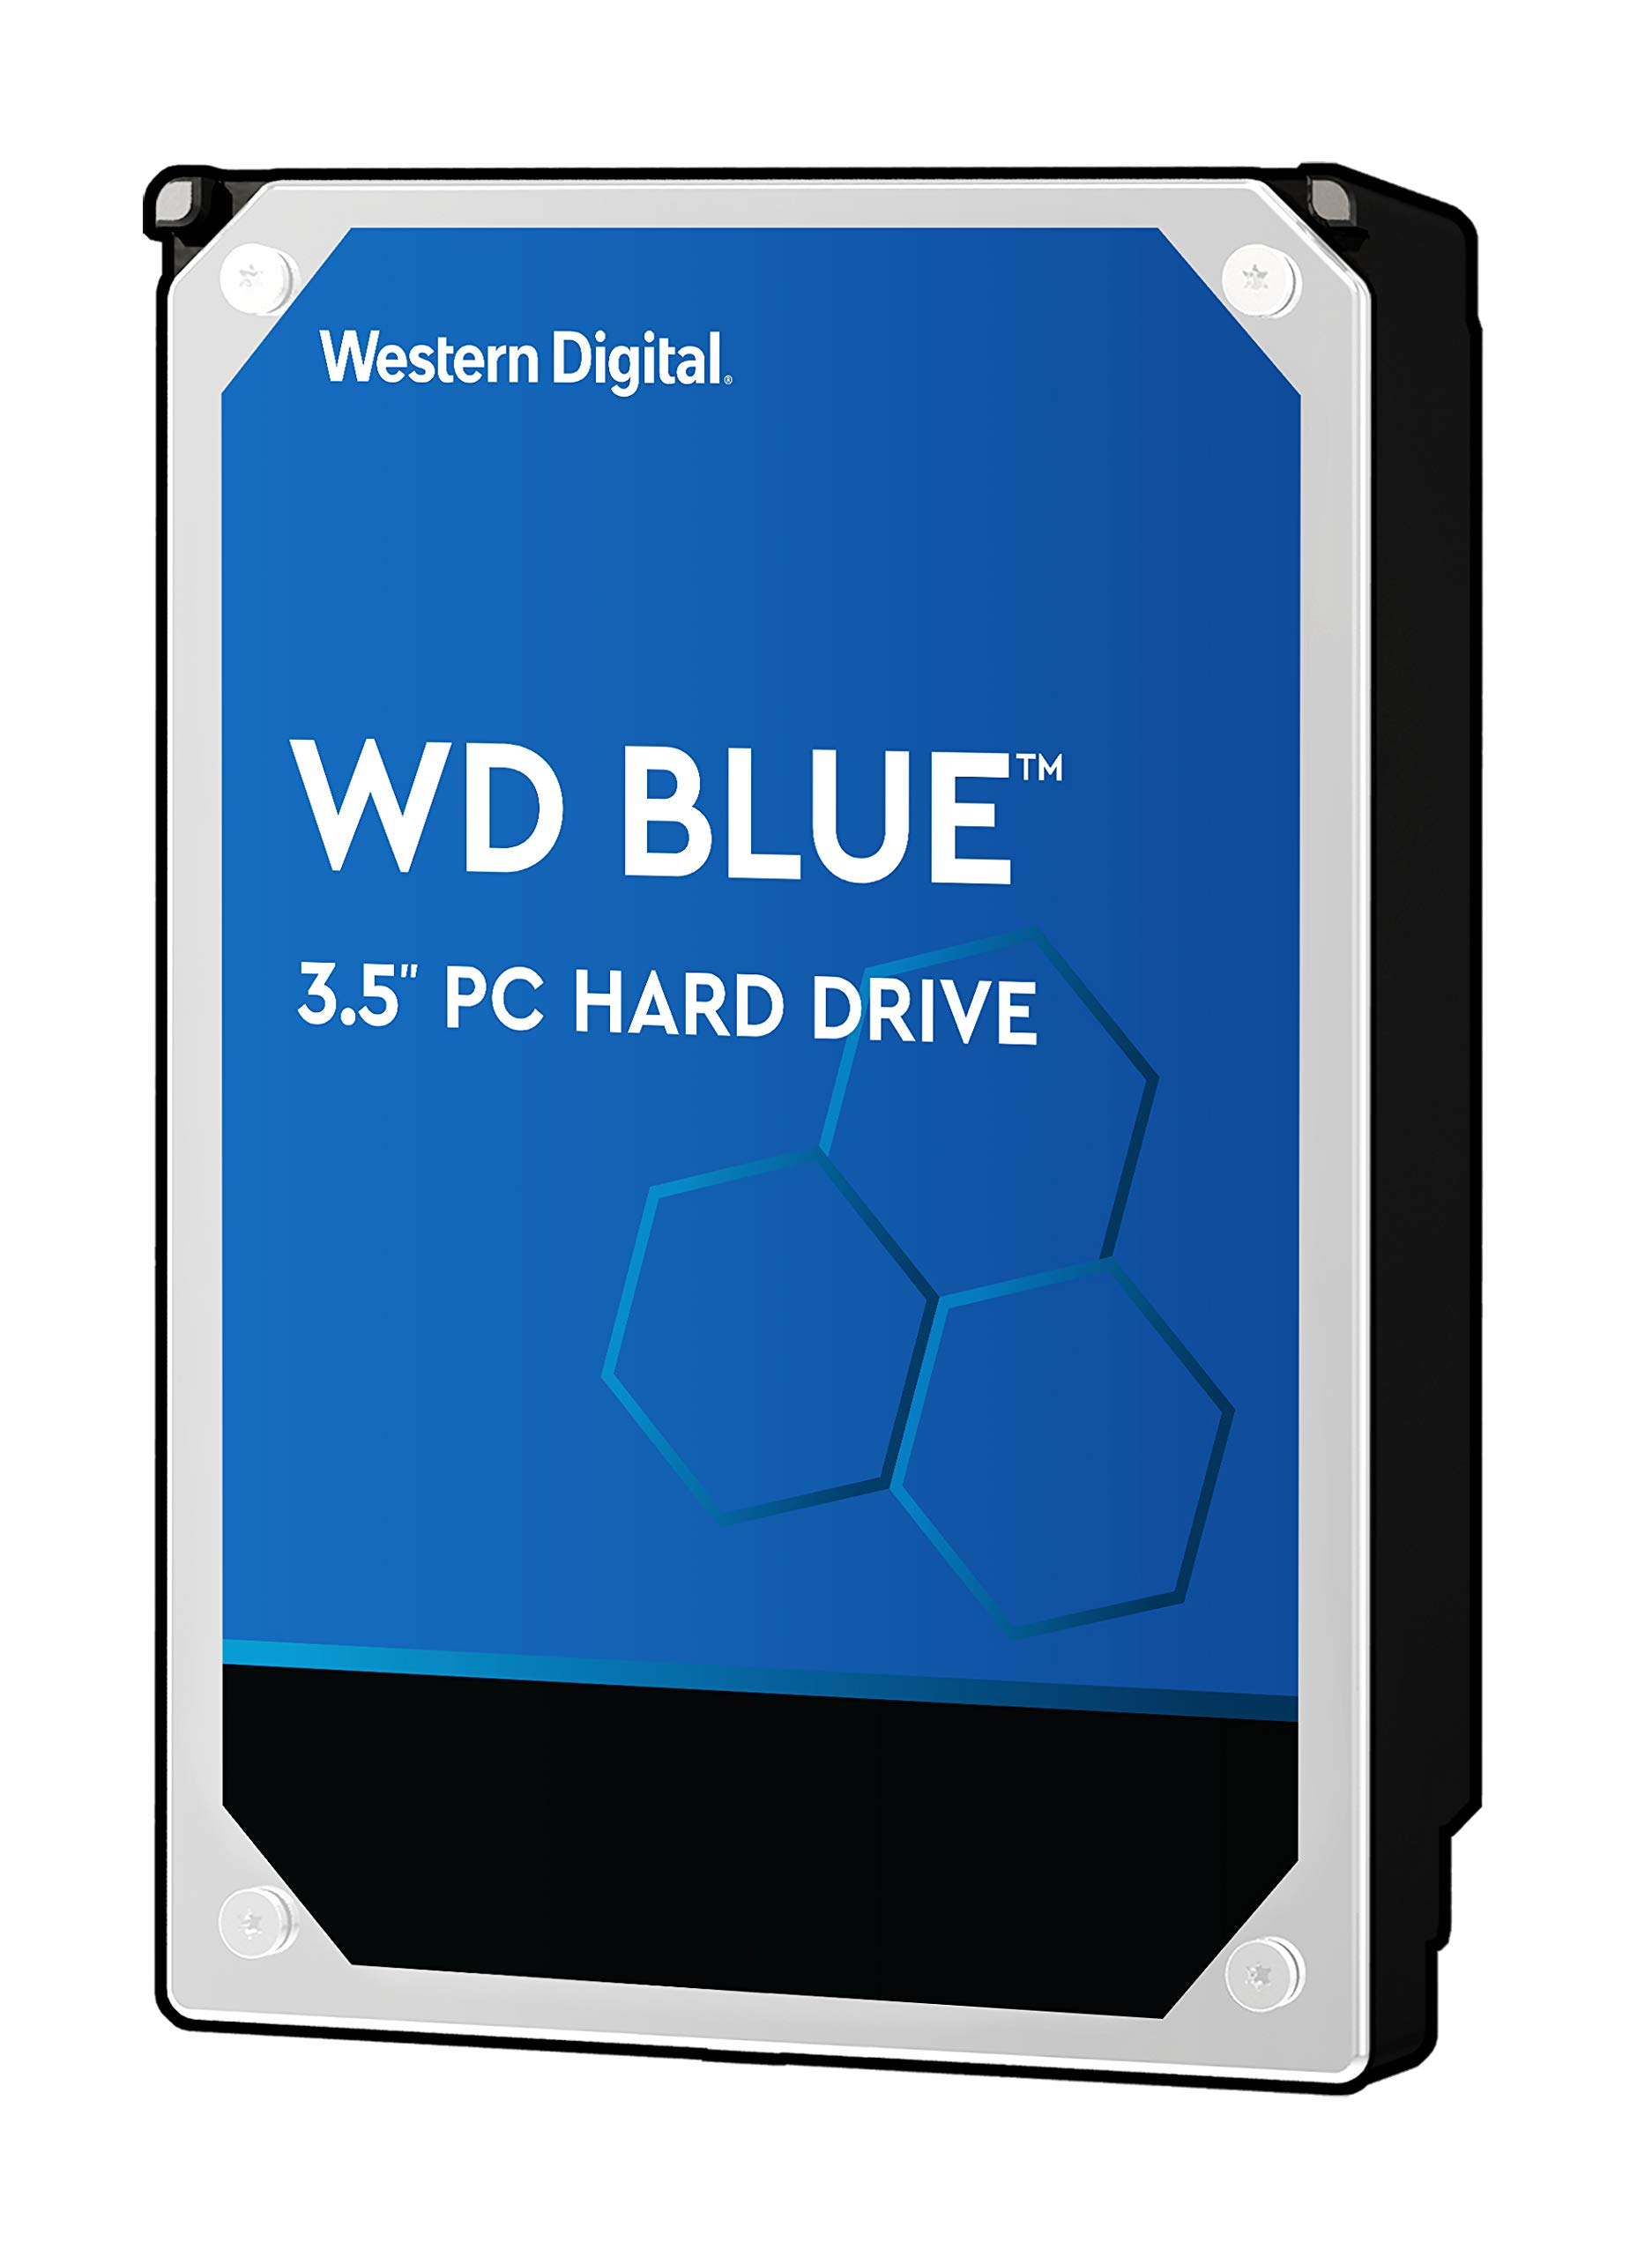 WD Blue 1TB PC Hard Drive - 7200 RPM Class, SATA 6 Gb/s, 64 MB Cache, 3.5'' - WD10EZEX by Western Digital